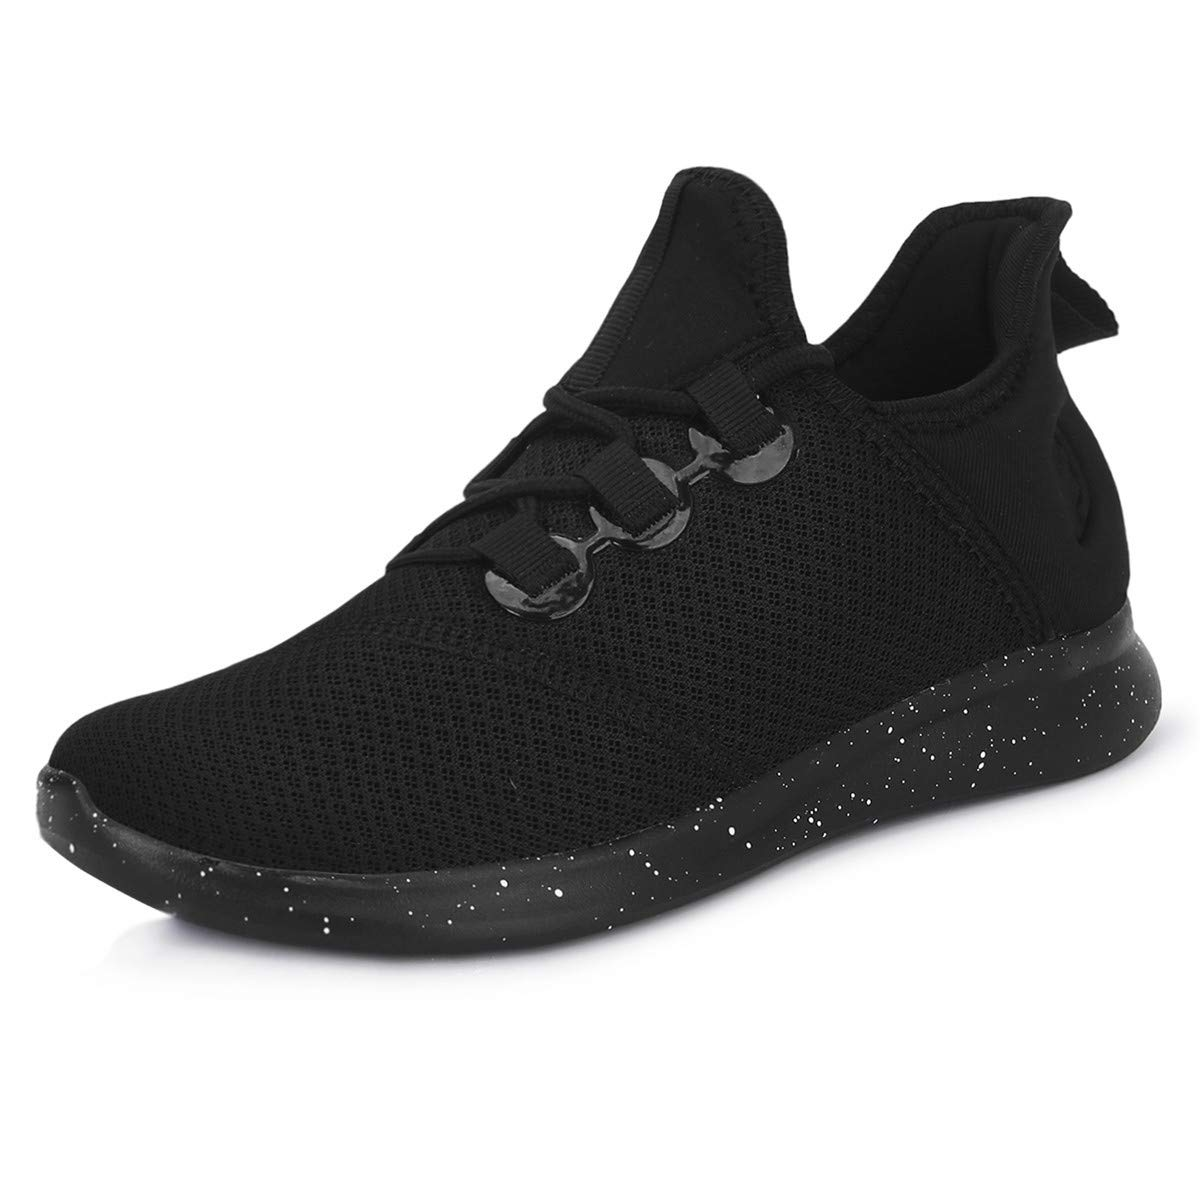 JOINFREE Casual Fashion Black Sports Shoes Workout Trainers Comfortable Mesh Walking Athelic Shoes (Black, 39 EU)